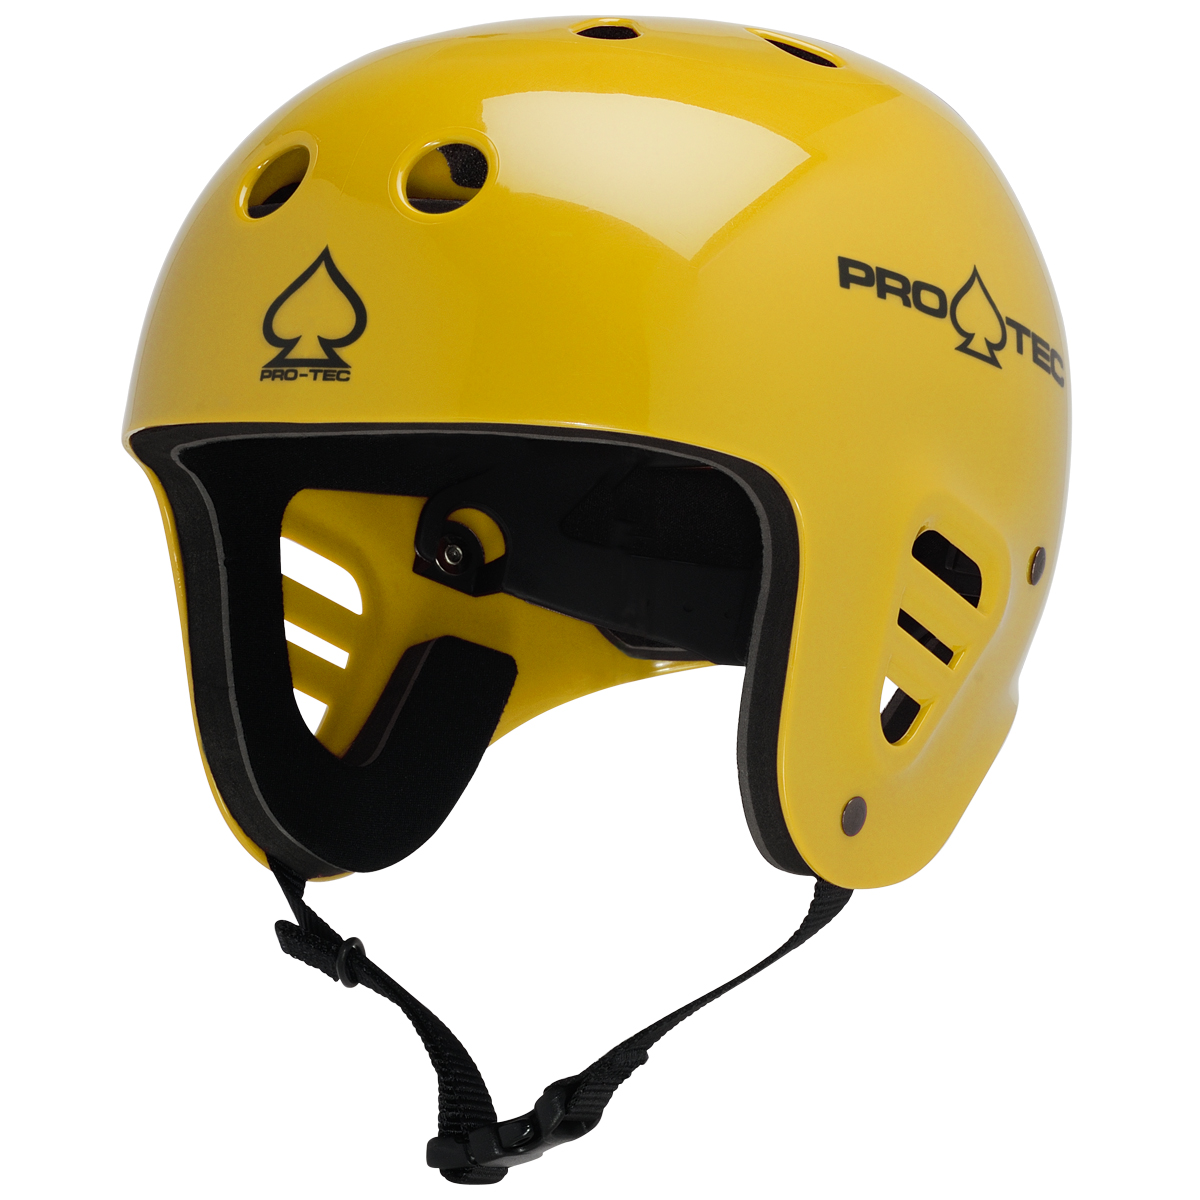 CLASSIC FULL CUT WATER GLOSS YELLOW  SMALL/MEDIUM (54-58CM) PRO TEC 2014